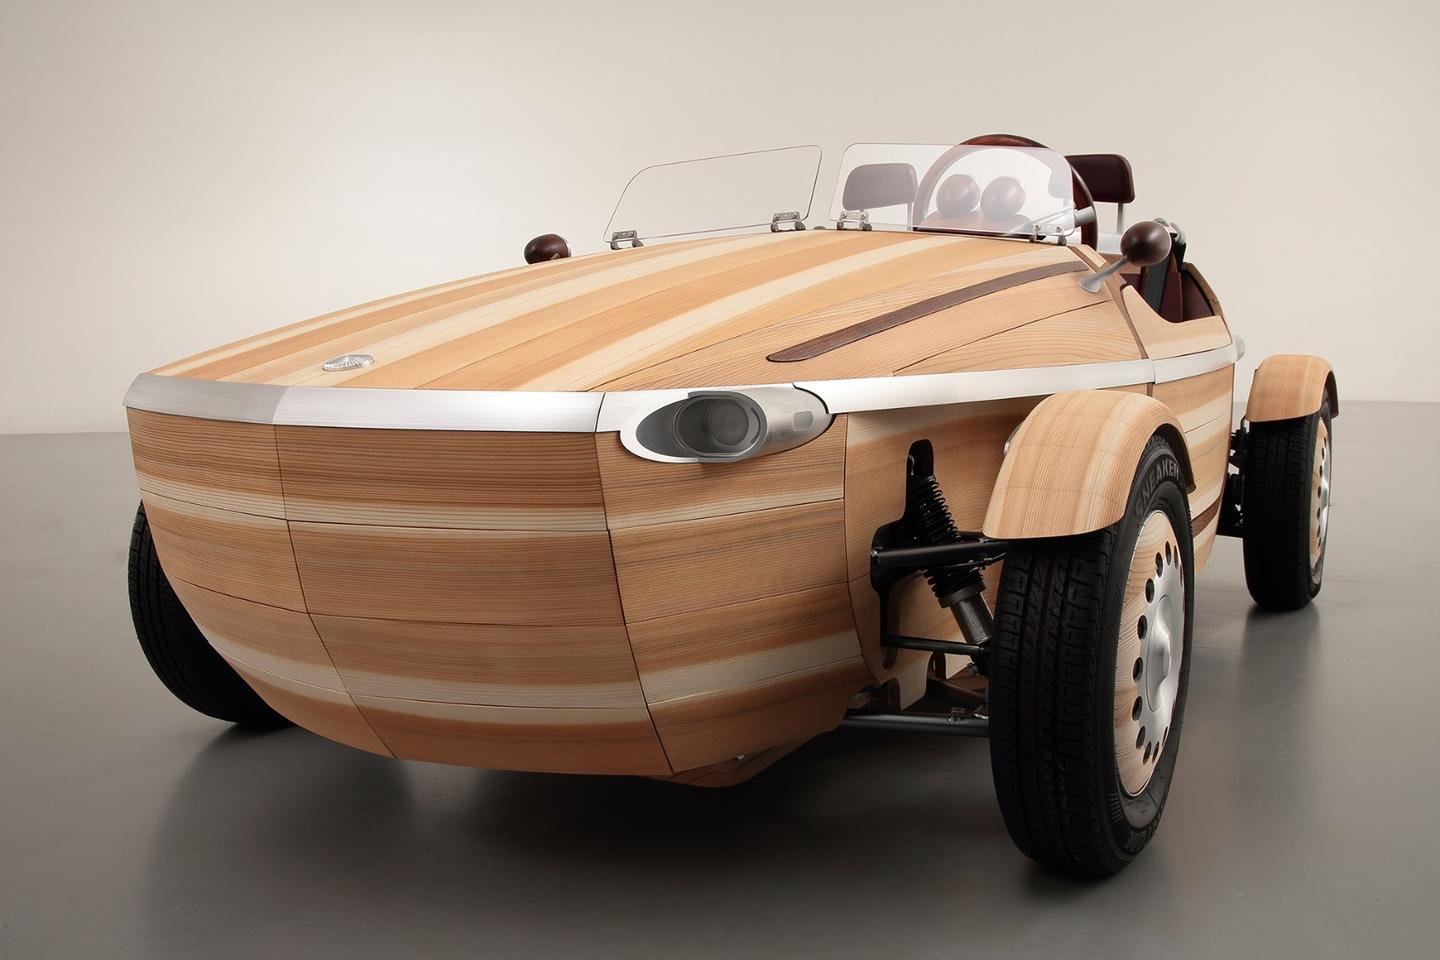 Debuting in April at Milan Design Week, the Toyota Setsuna concept is a wooden masterpiece that combines this timeless material with a 100-year chronograph